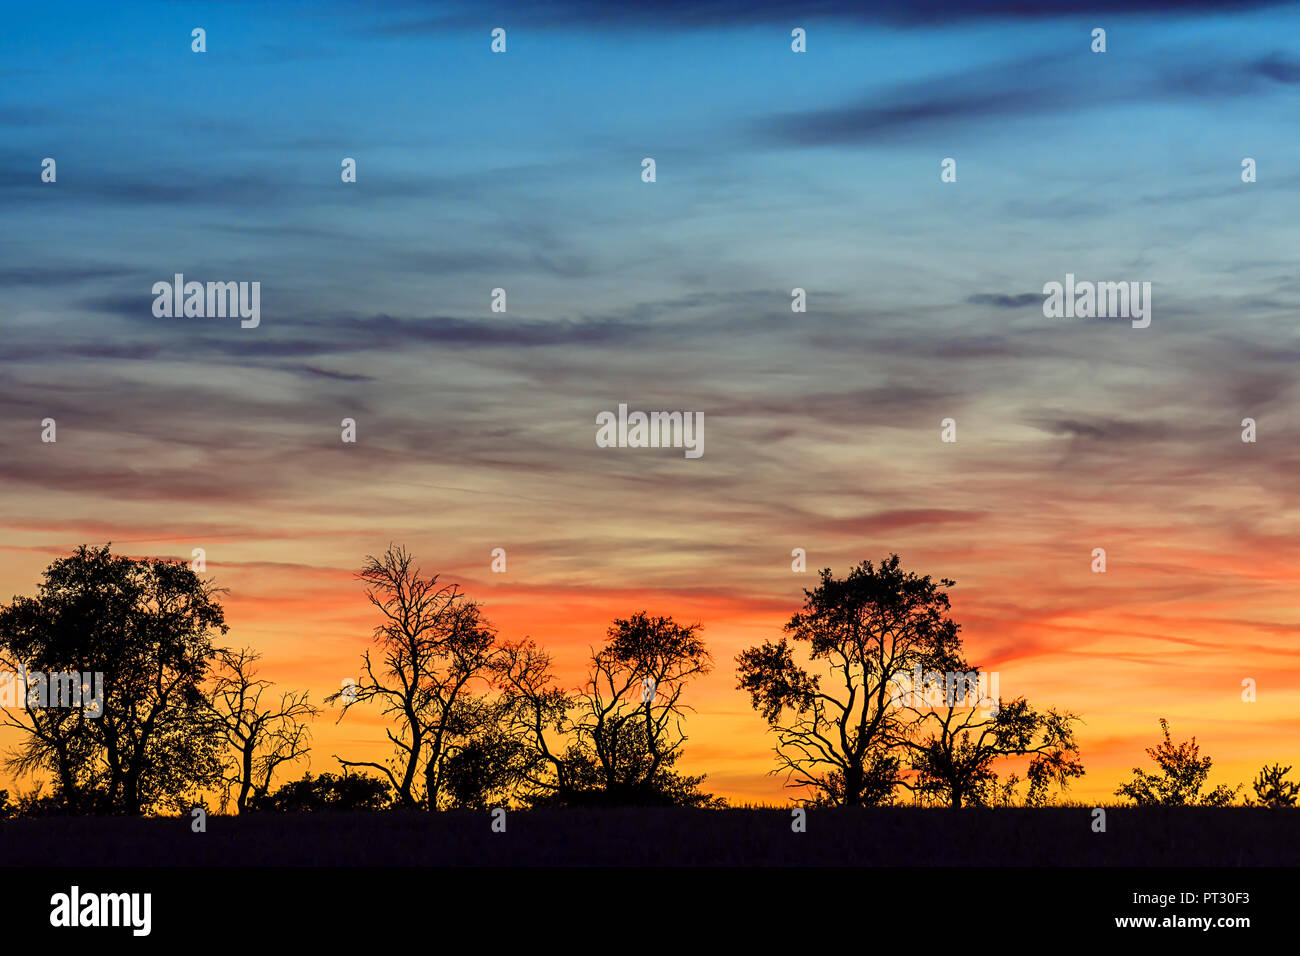 Tree silouettes at sunset, Bavaria, Germany - Stock Image